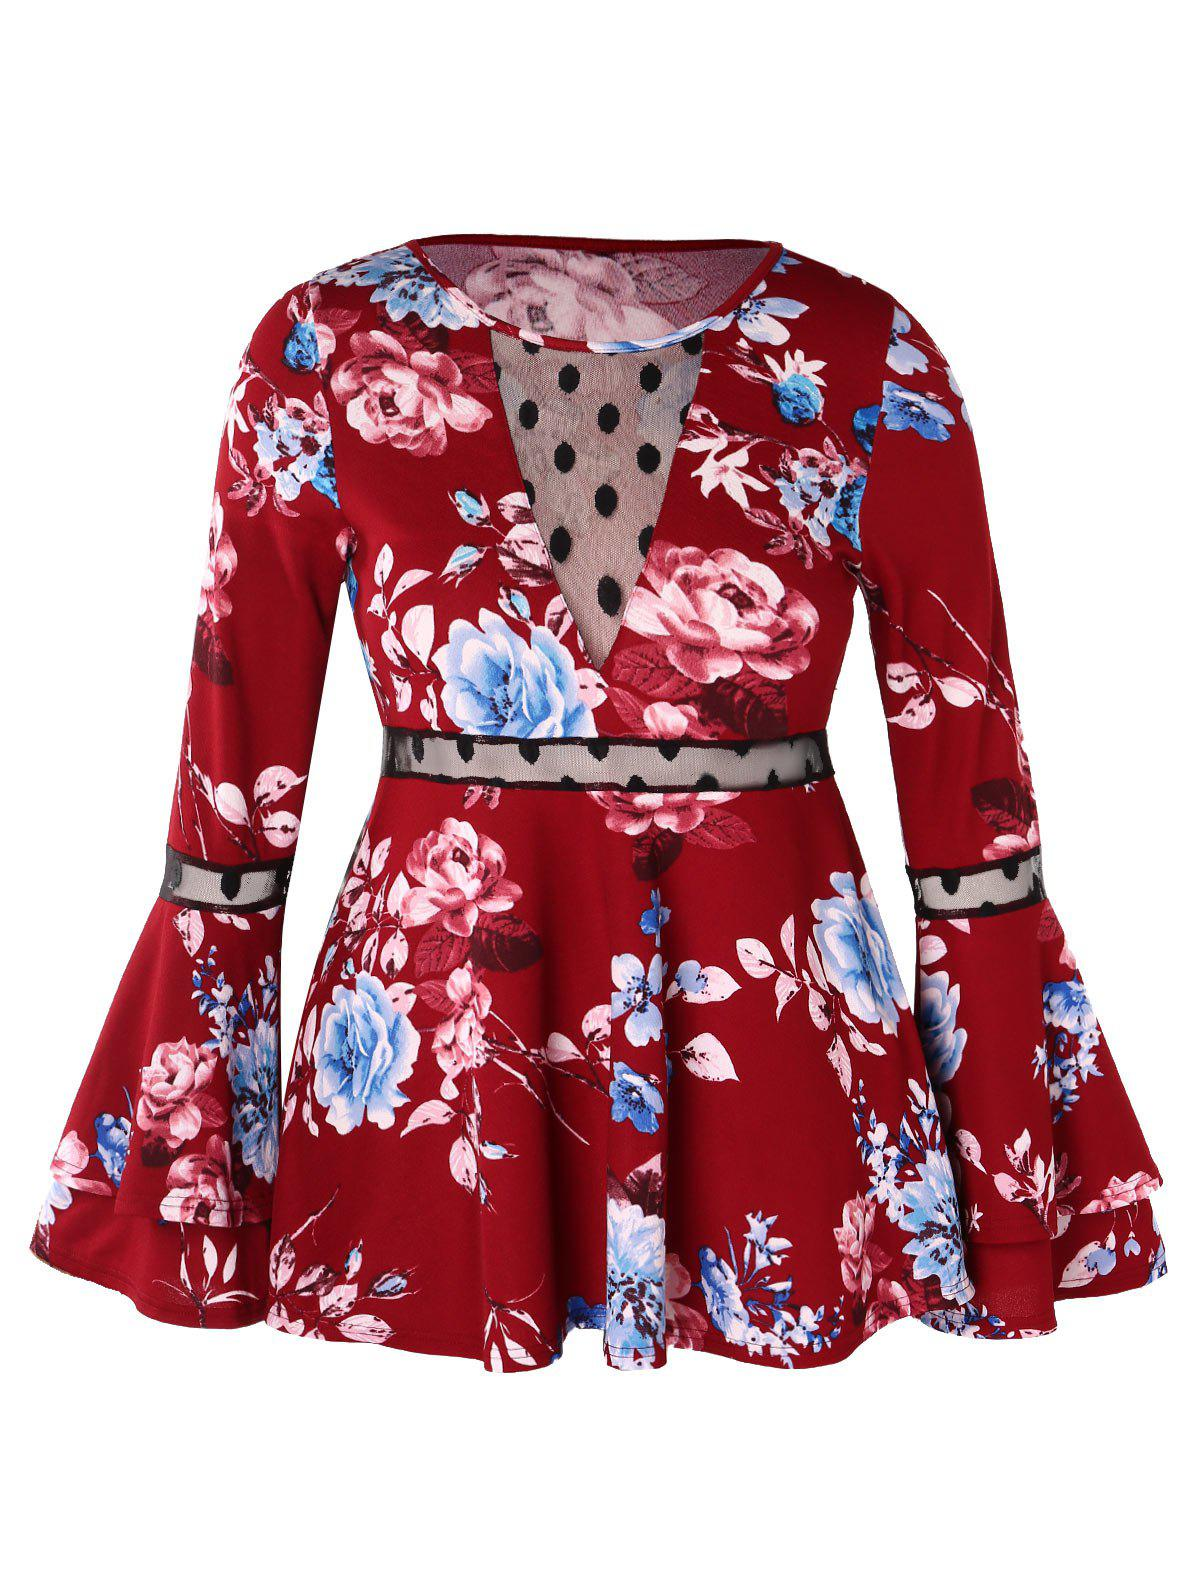 Plus Size Bell Sleeve Floral Print Blouse - RED WINE L